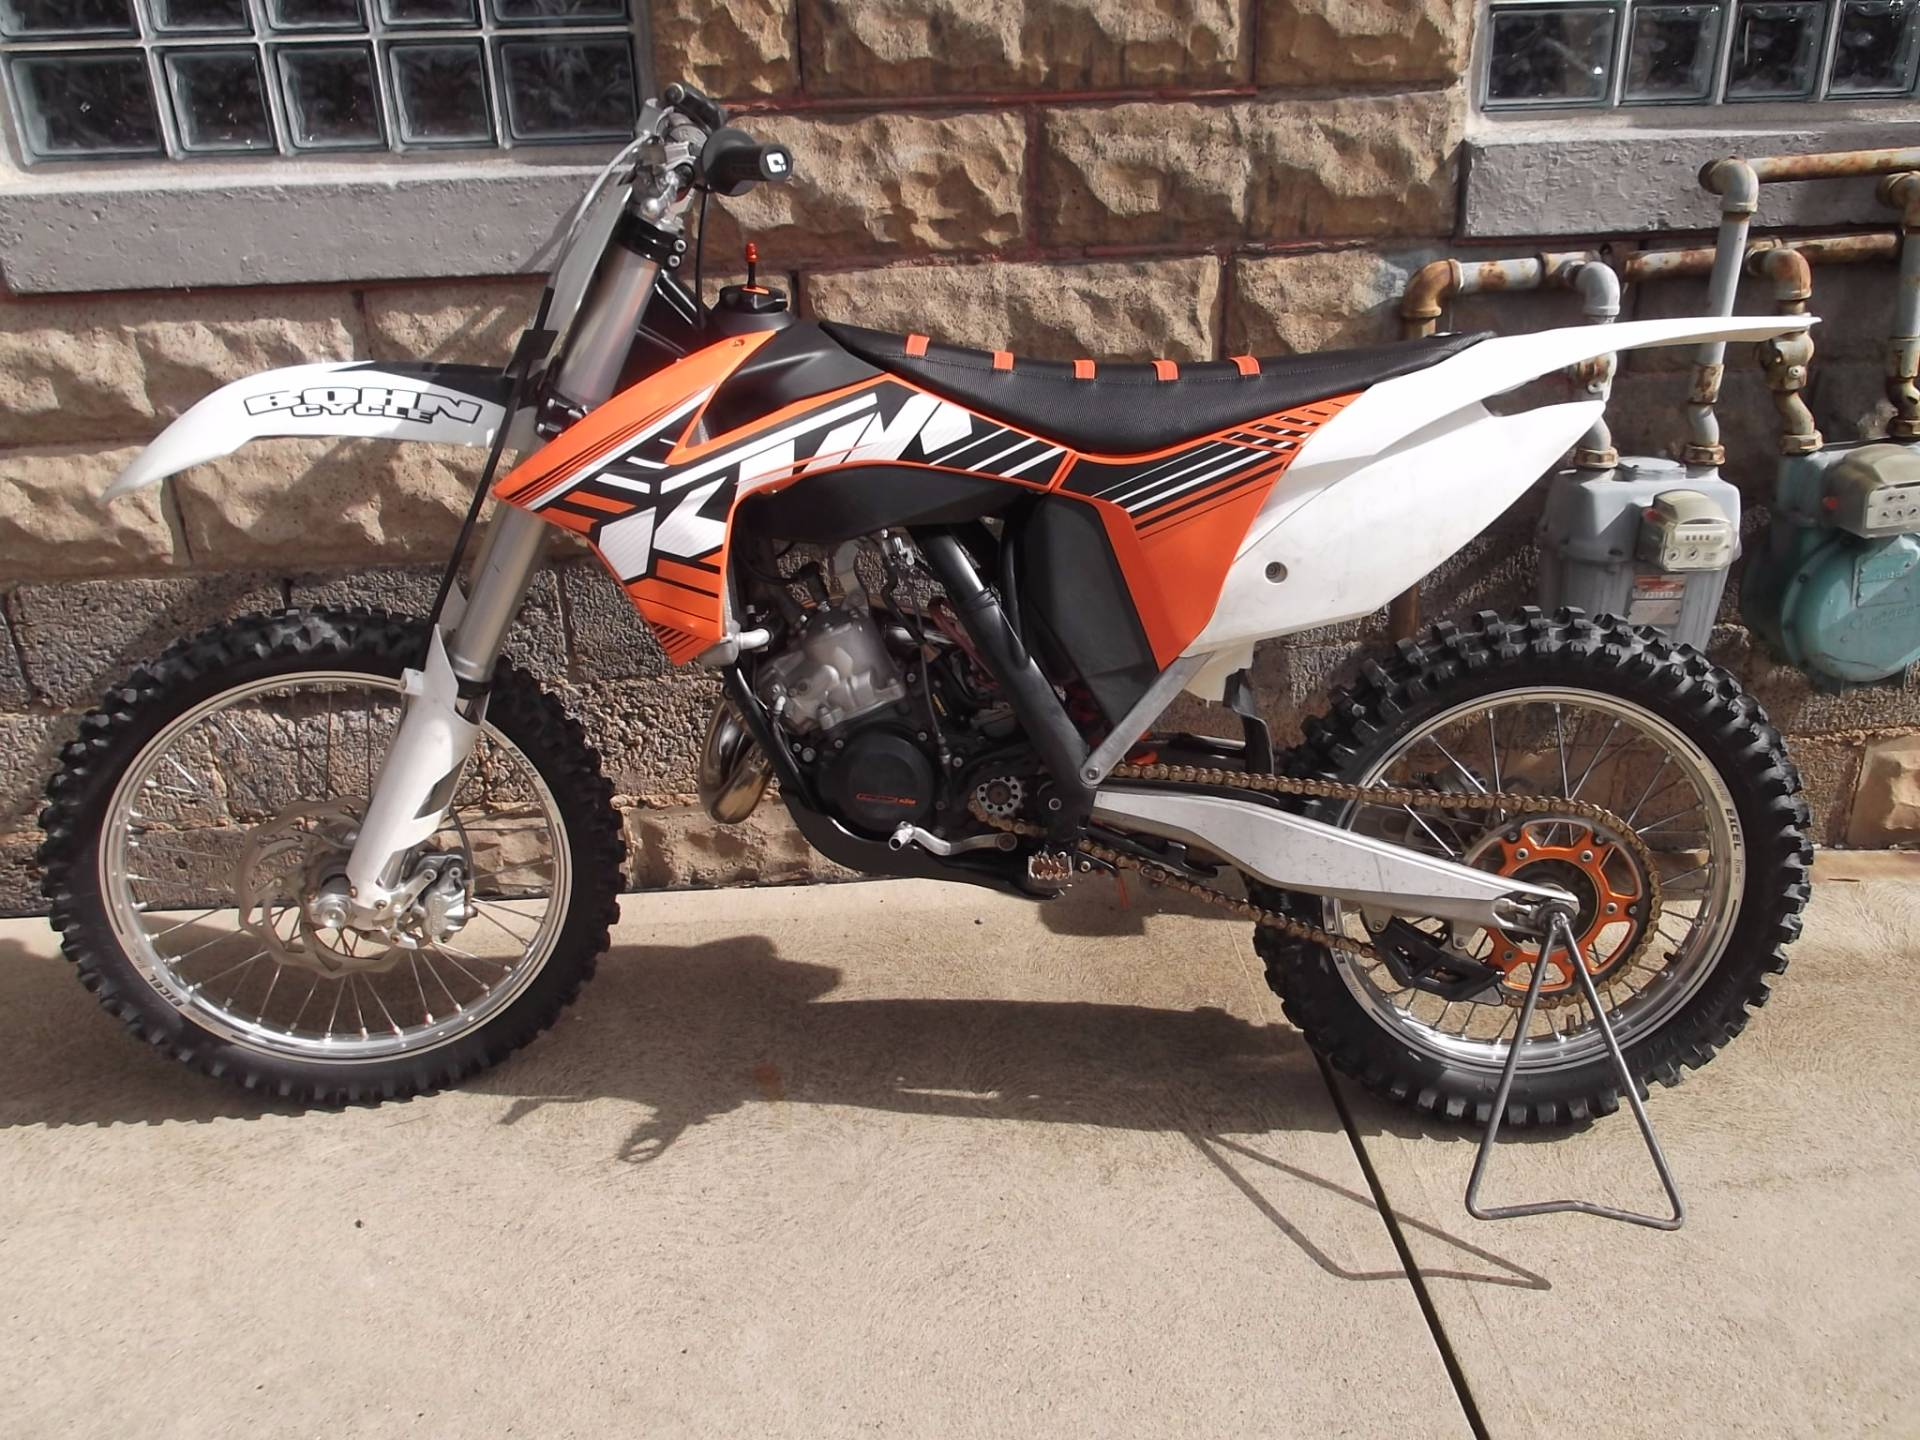 Dirt bikes for sale pittsburgh pa - 2012 Ktm 125 Sx In Pittsburgh Pennsylvania